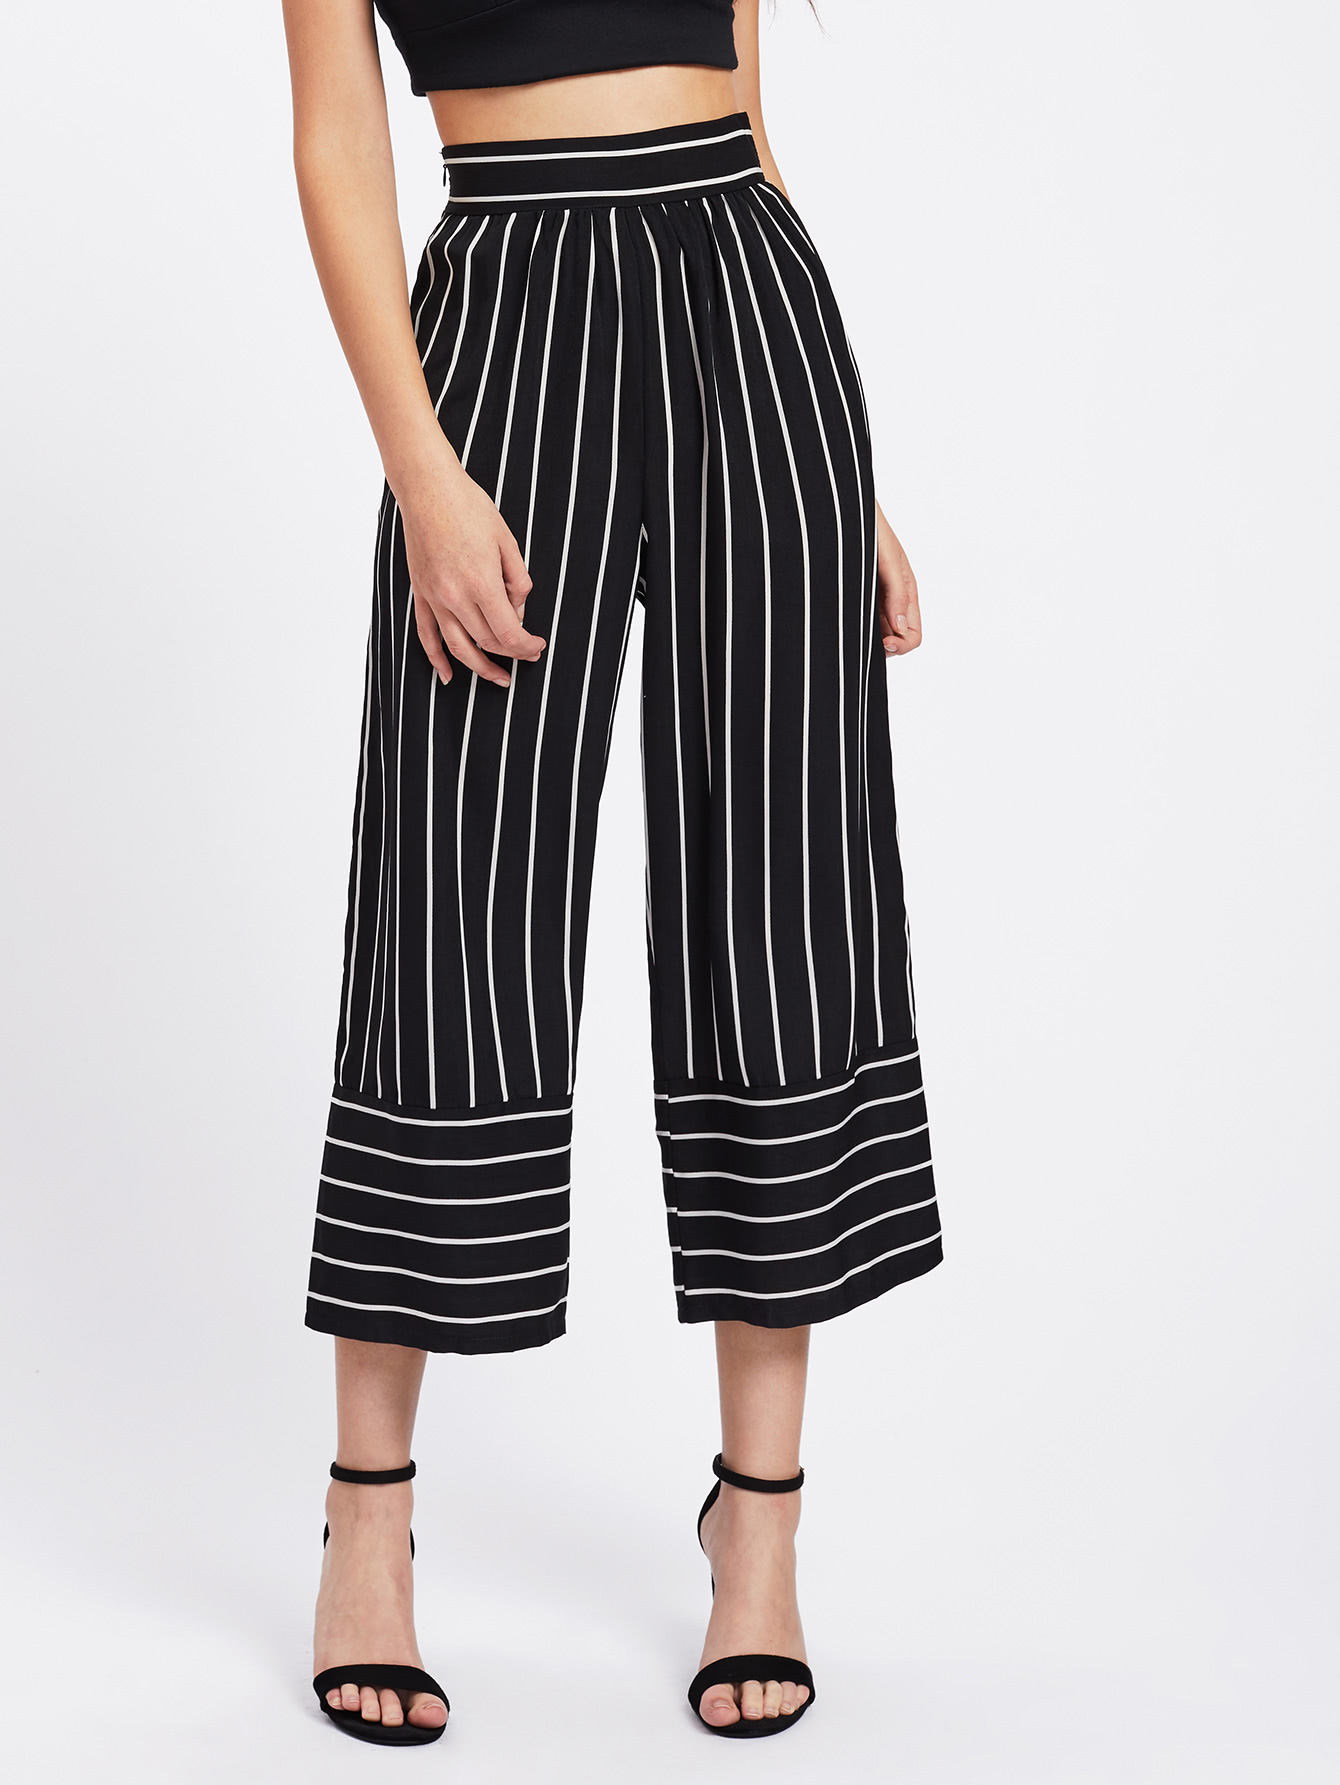 http://us.shein.com/Striped-Wide-Leg-Pants-p-371562-cat-1740.html?aff_id=25452